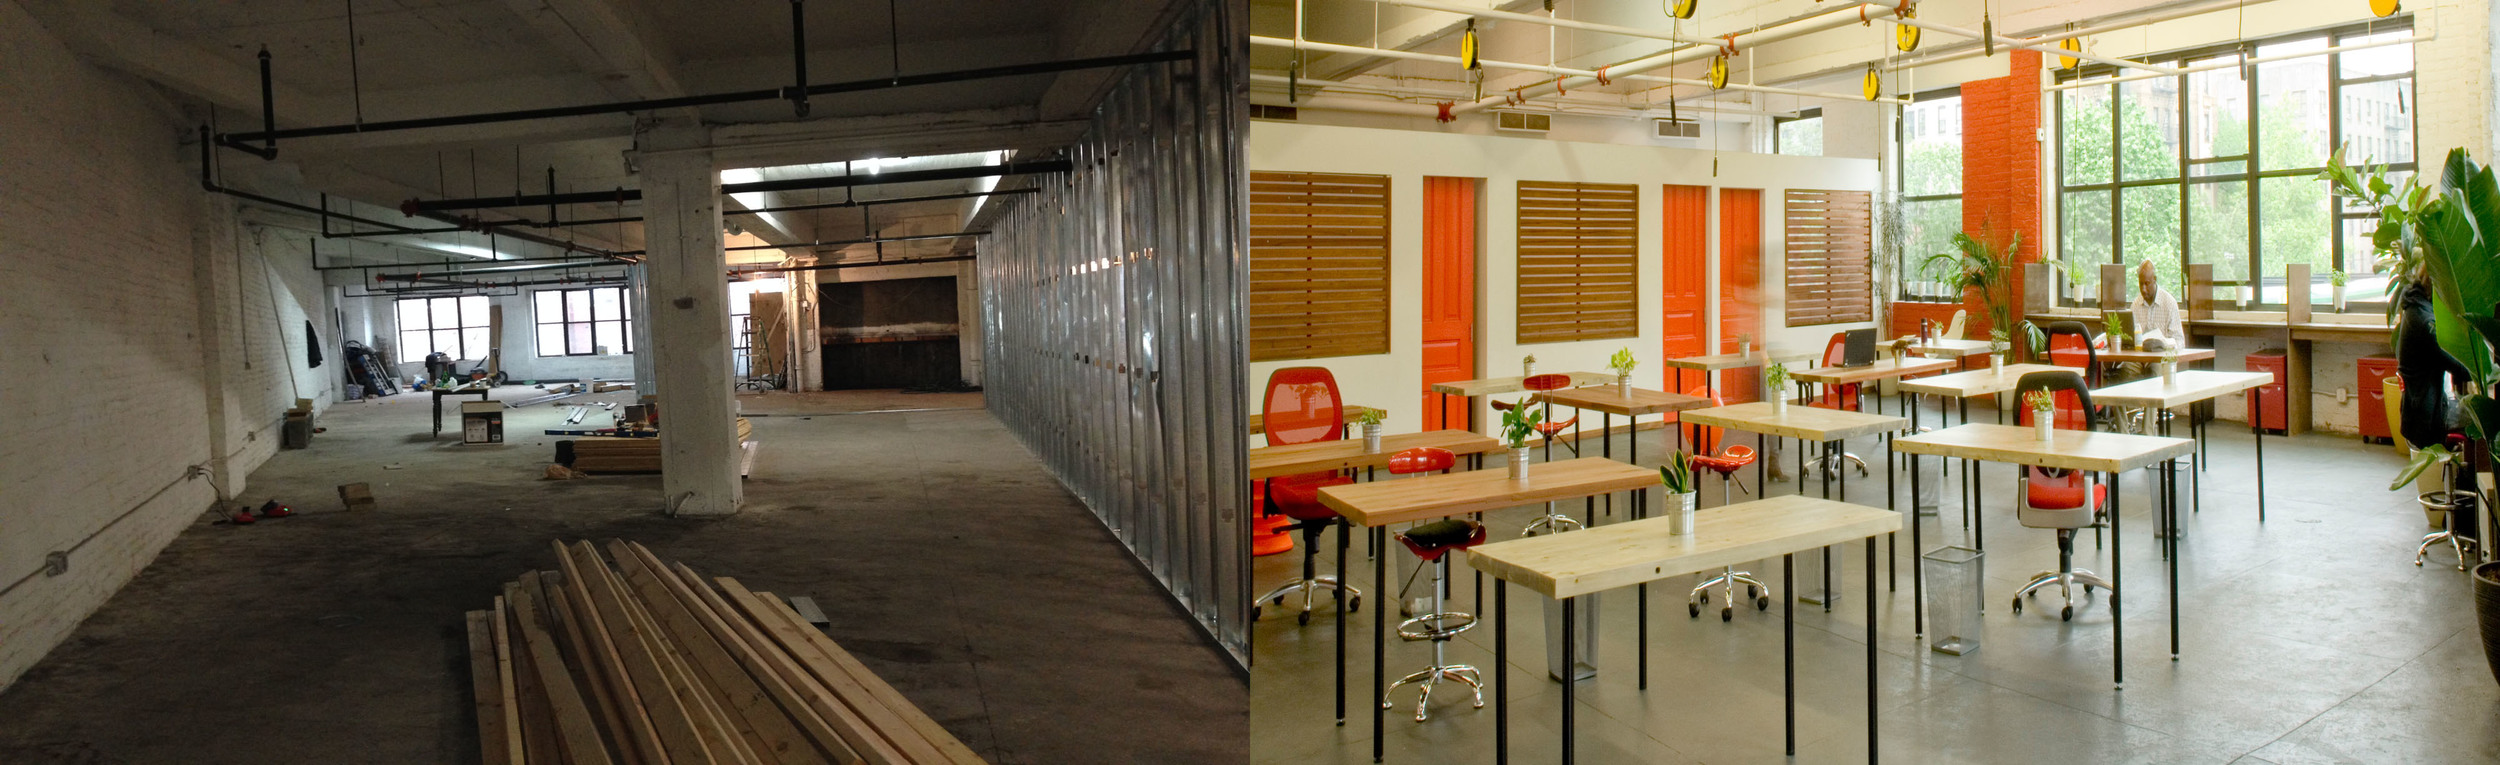 Compound Cowork:  We transformed a raw, commercial space into a coworking facility, where we provide members with alternative office environments, a community meeting space, and more. Click on the photo for more information.